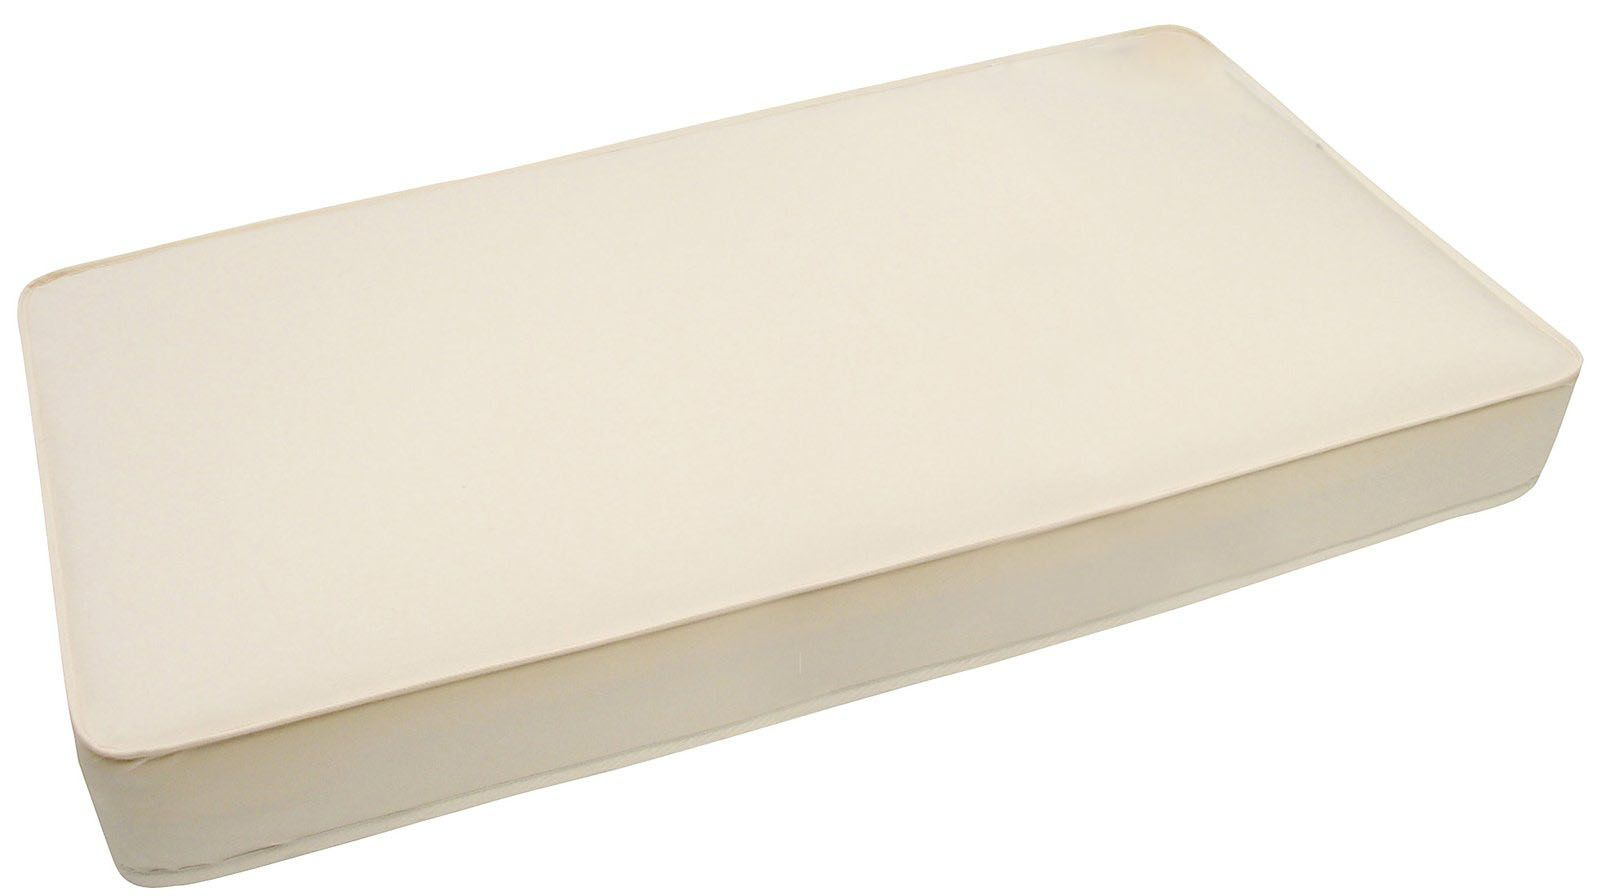 Cotbed Deluxe Mattress with Organic Cotton Cover